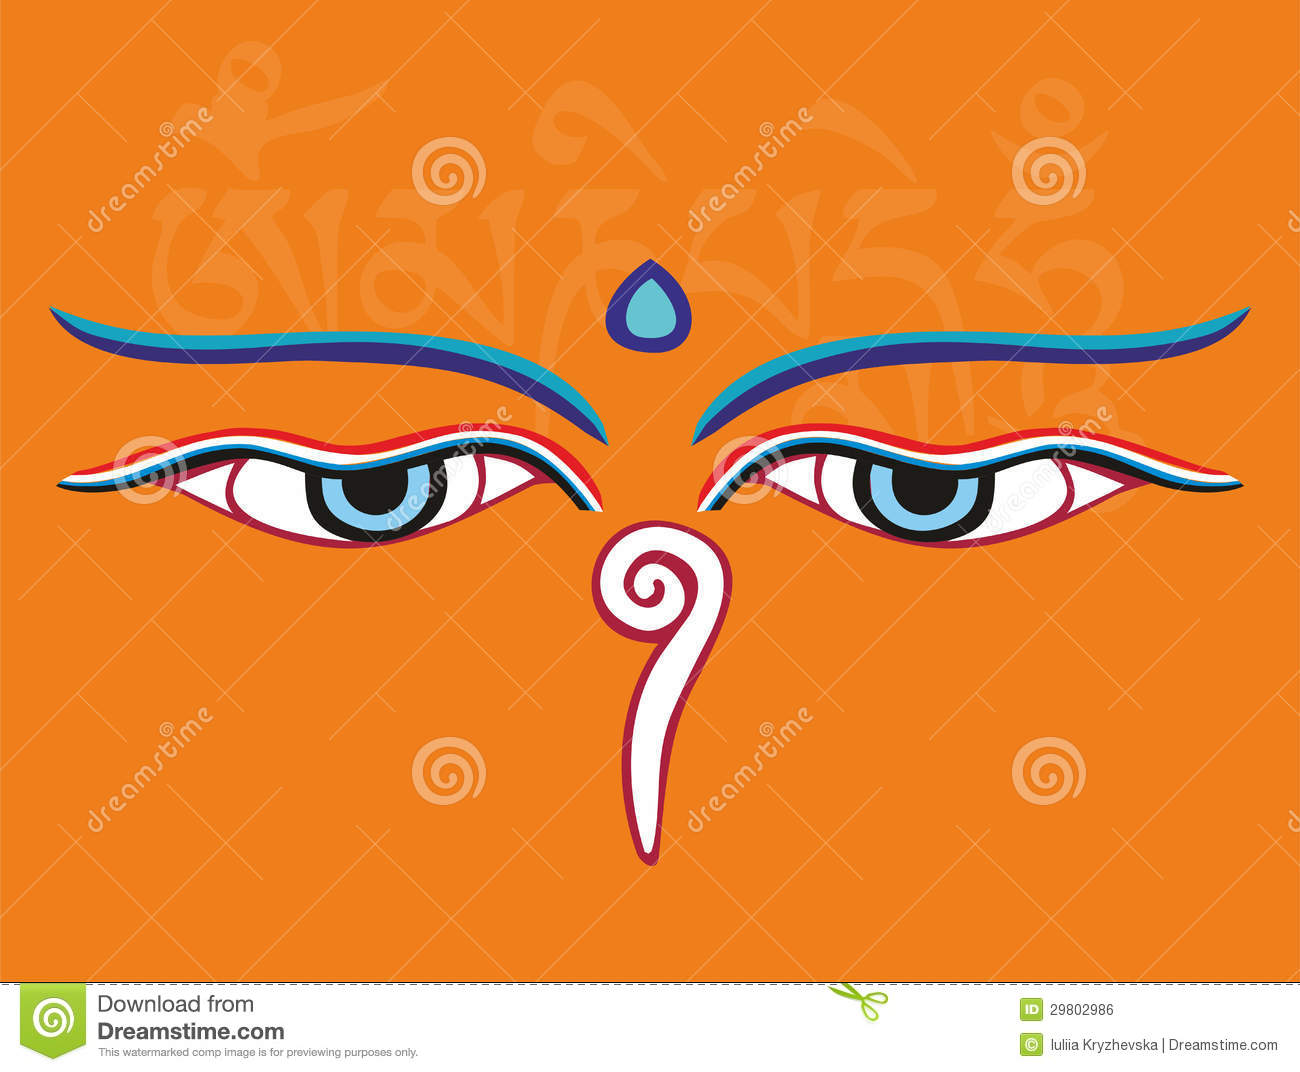 Buddha Eyes Or Wisdom Eyes Holy Religious Symbol Stock Vector